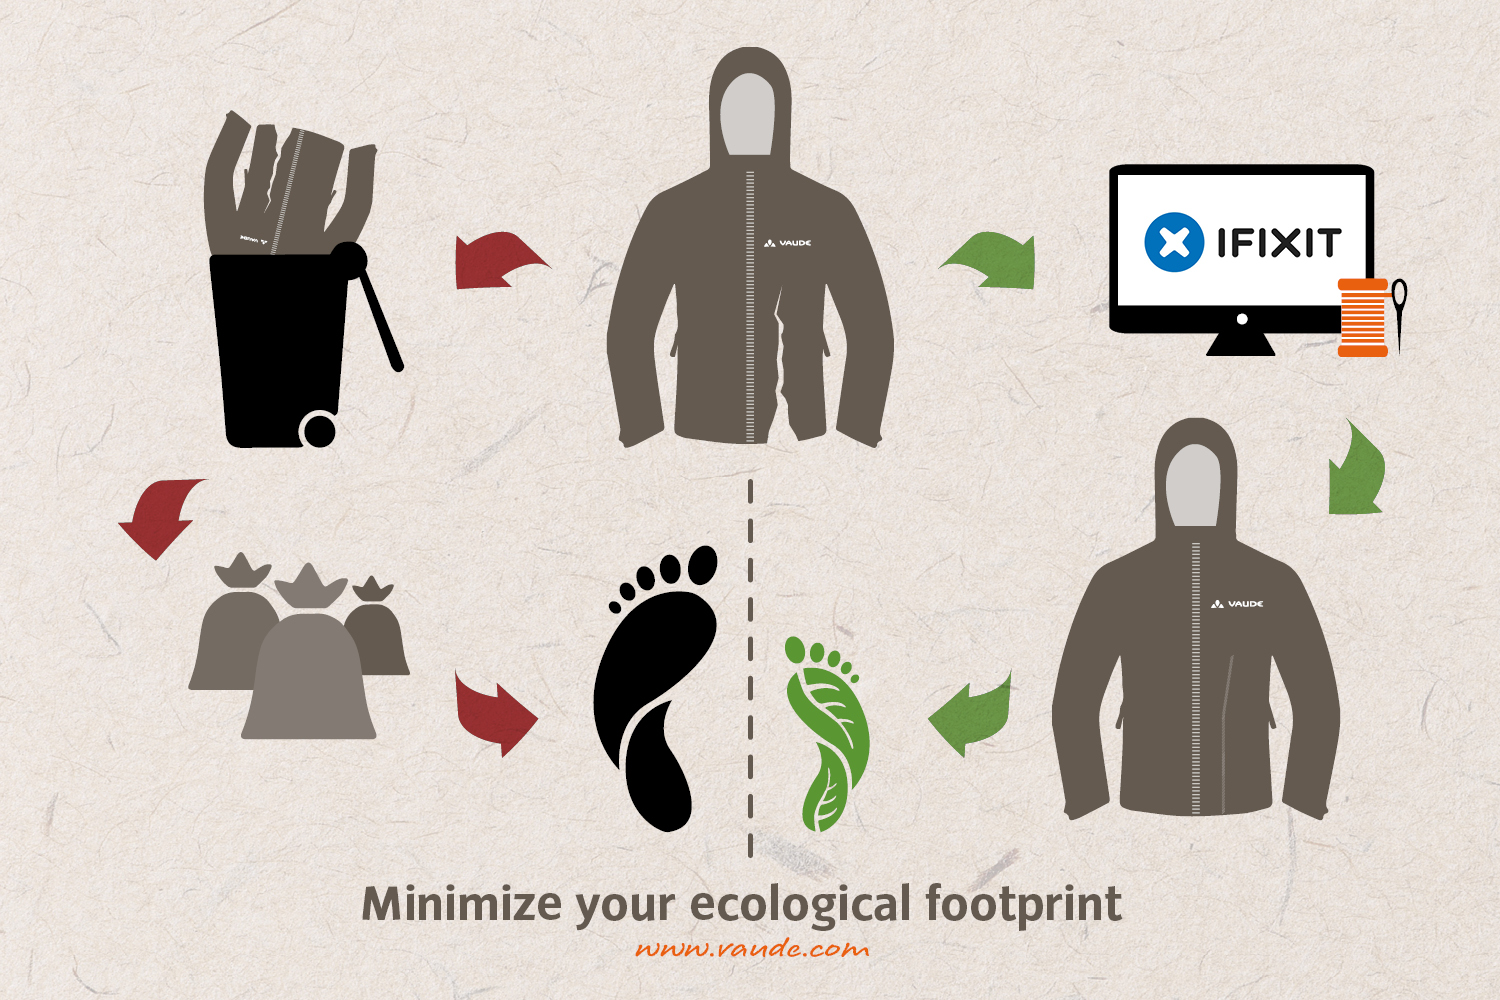 Minimize your ecological footprint